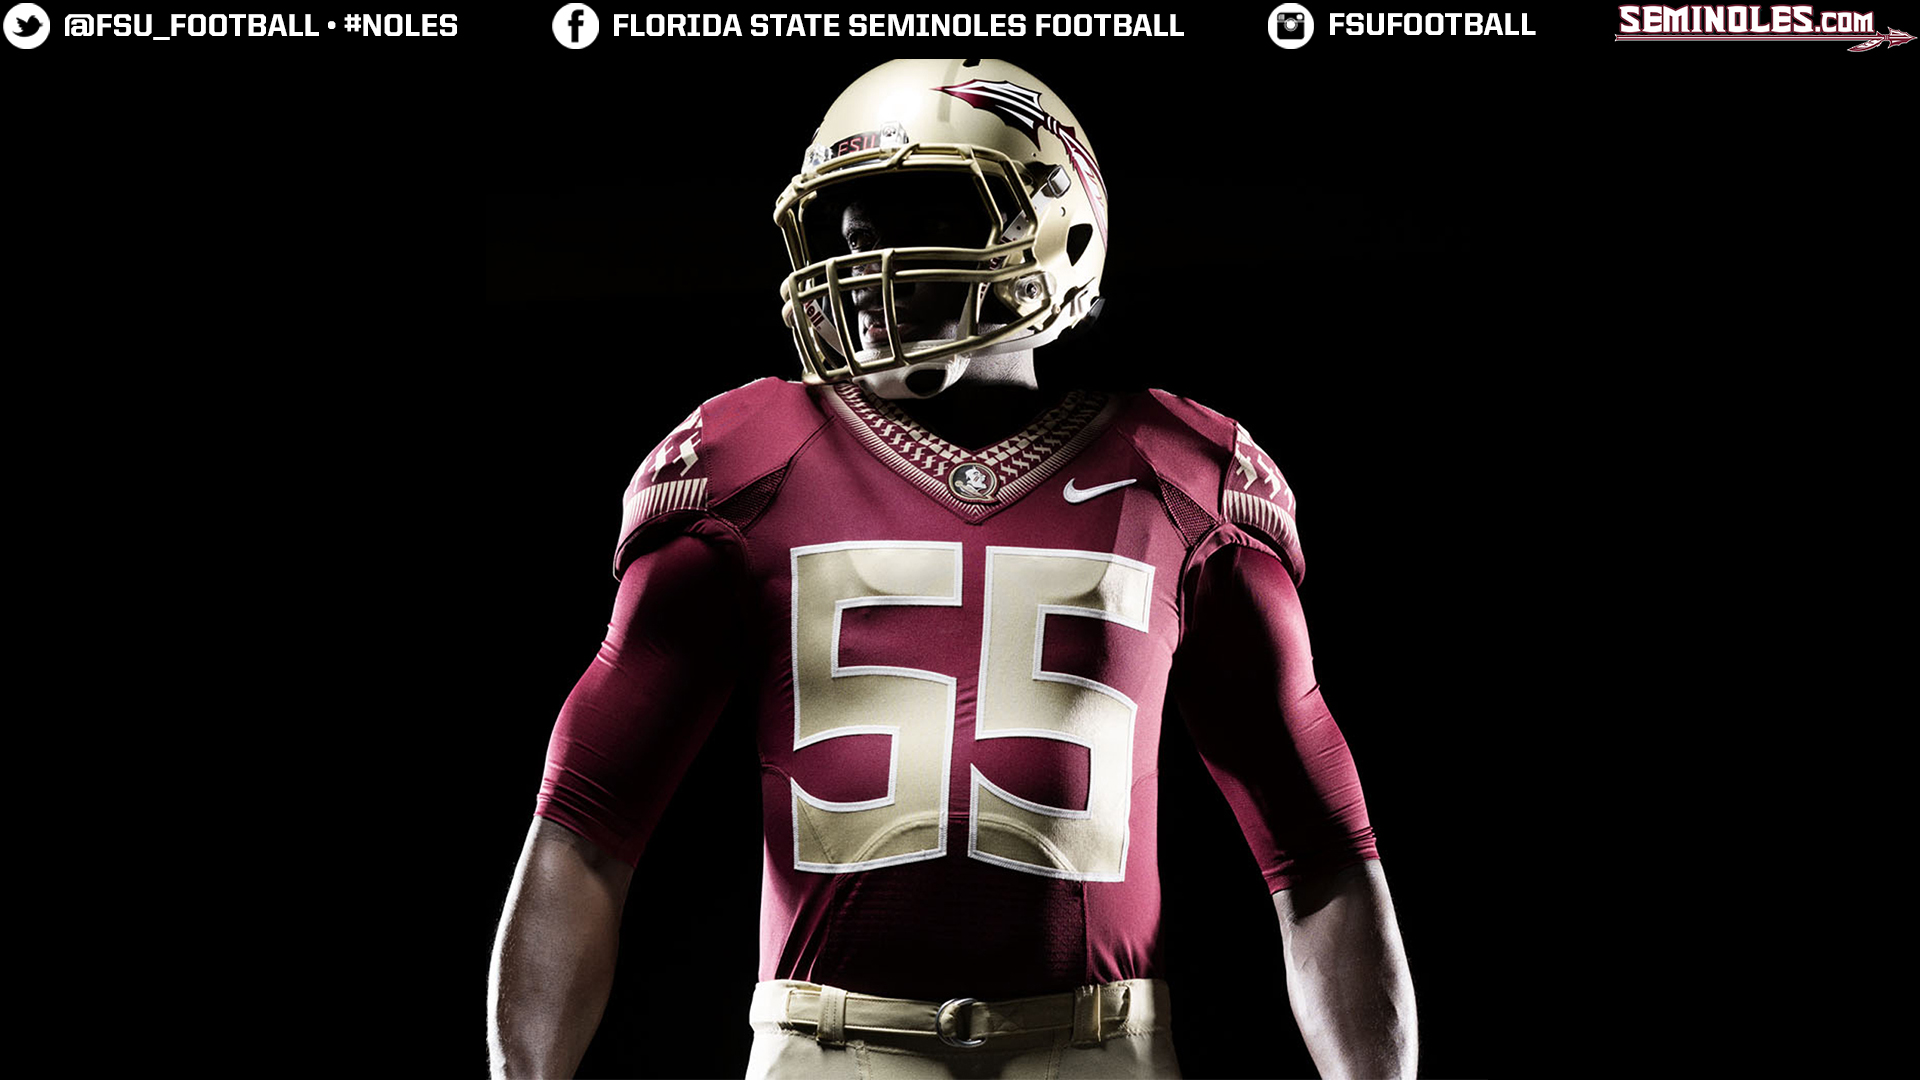 Florida State Seminoles Wallpapers Browser Themes 1920x1080